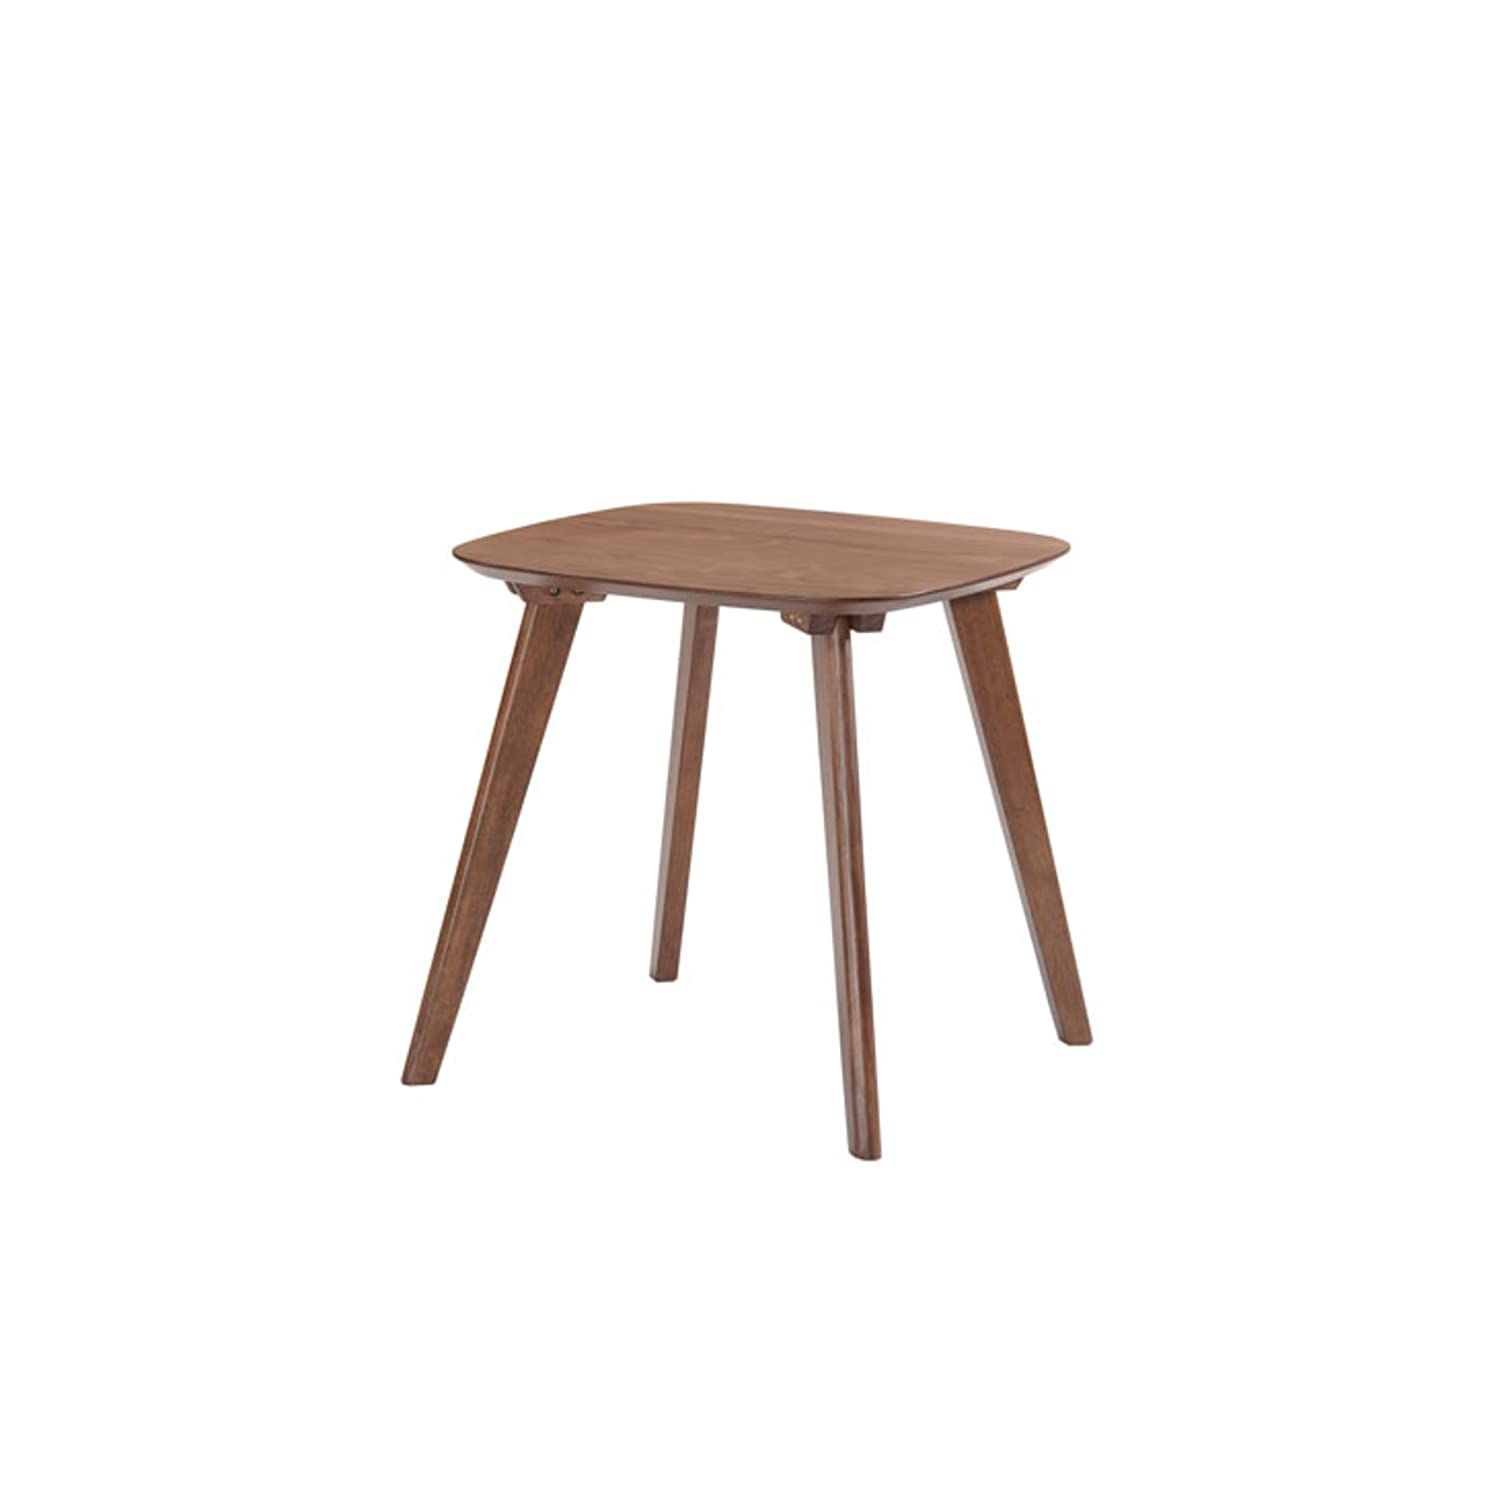 Emerald Home Simplicity Walnut Brown Coffee Table with Curved, Tear Drop Shaped Top And Round, Slanted Legs Emerald Home Furnishings T550-0